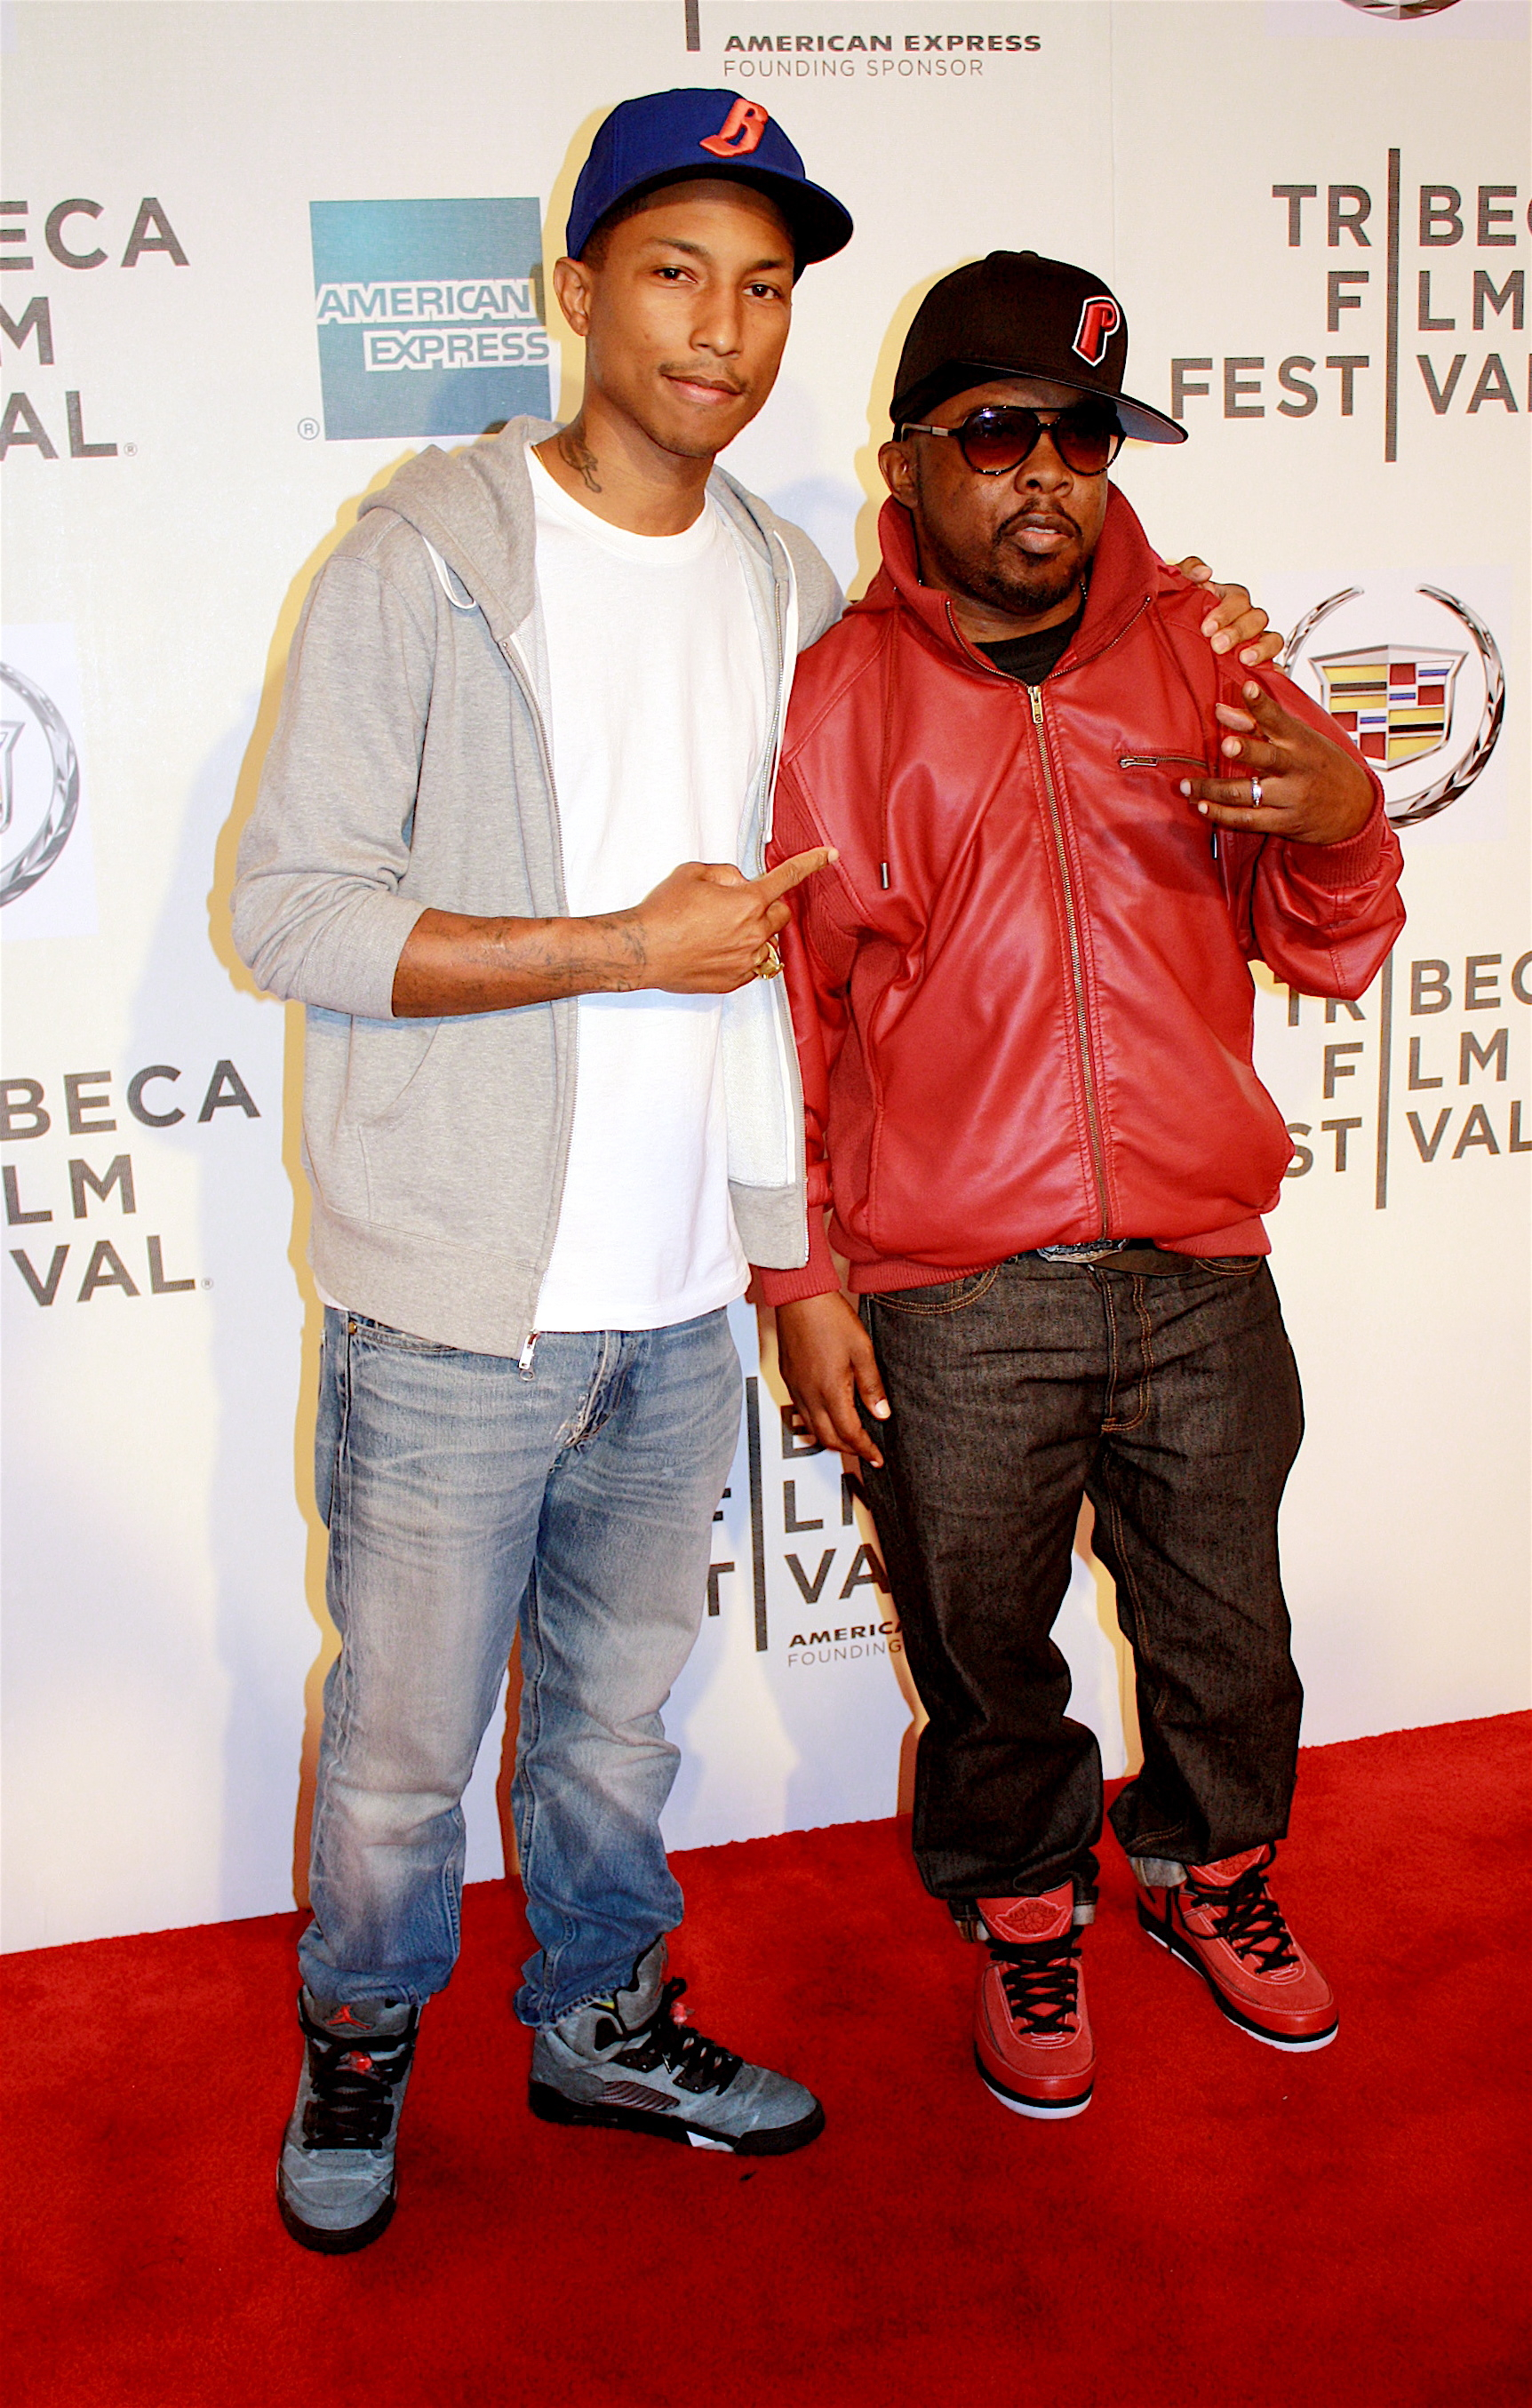 """04/27/2011 - Pharrell Williams and Phife Dawg - 10th Annual Tribeca Film Festival - """"Beats, Rhymes & Life: The Travels of a Tribe Called Quest"""" Premiere - Arrivals - Tribeca Performing Arts Center - New York City, NY, USA - Keywords: Malik Issac Taylor, Tribe Called Quest, Q Tip, Phife Dawg, Tribeca Film Festival, Beats, Rhymes and Life, Pharrell Wiliams, N.E.R.D Orientation: Portrait Face Count: 1 - False - Photo Credit: Hollie Jones / PR Photos - Contact (1-866-551-7827) - Portrait Face Count: 1"""